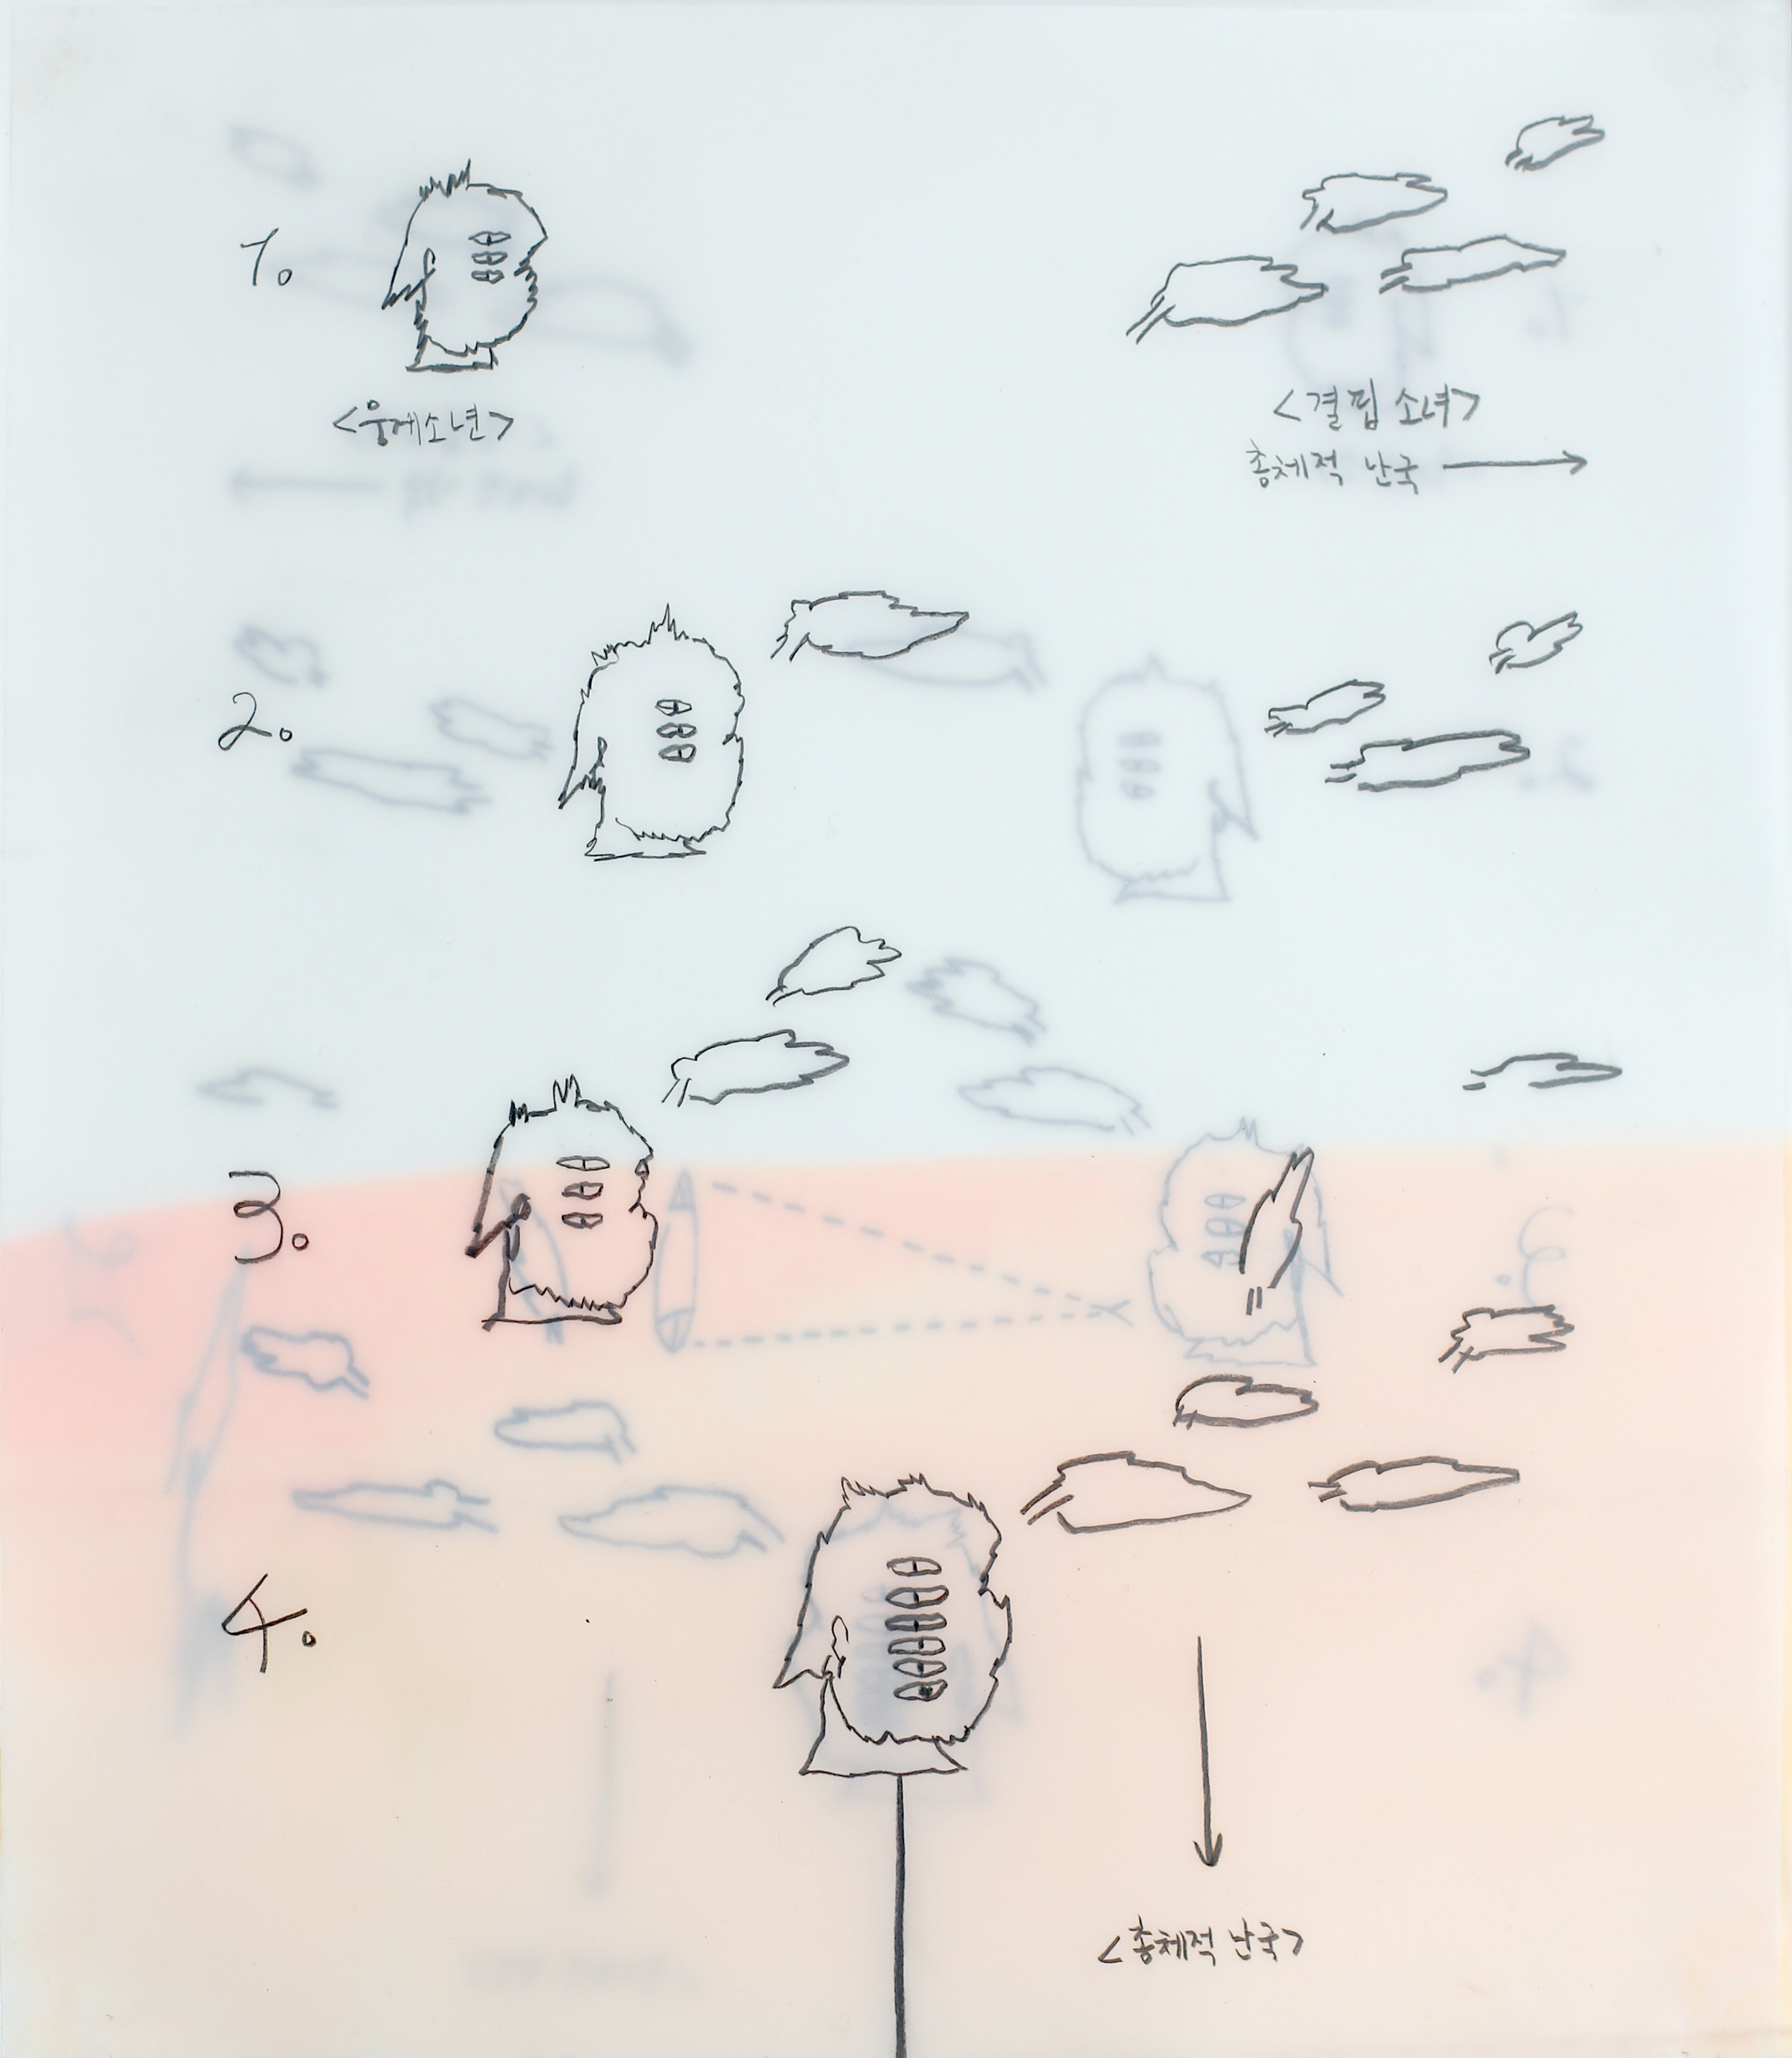 Vulnerable drawing #232 - omnishambles between us    2012, Acrylic, pencil on tracing paper, 25x22cm (3ea)